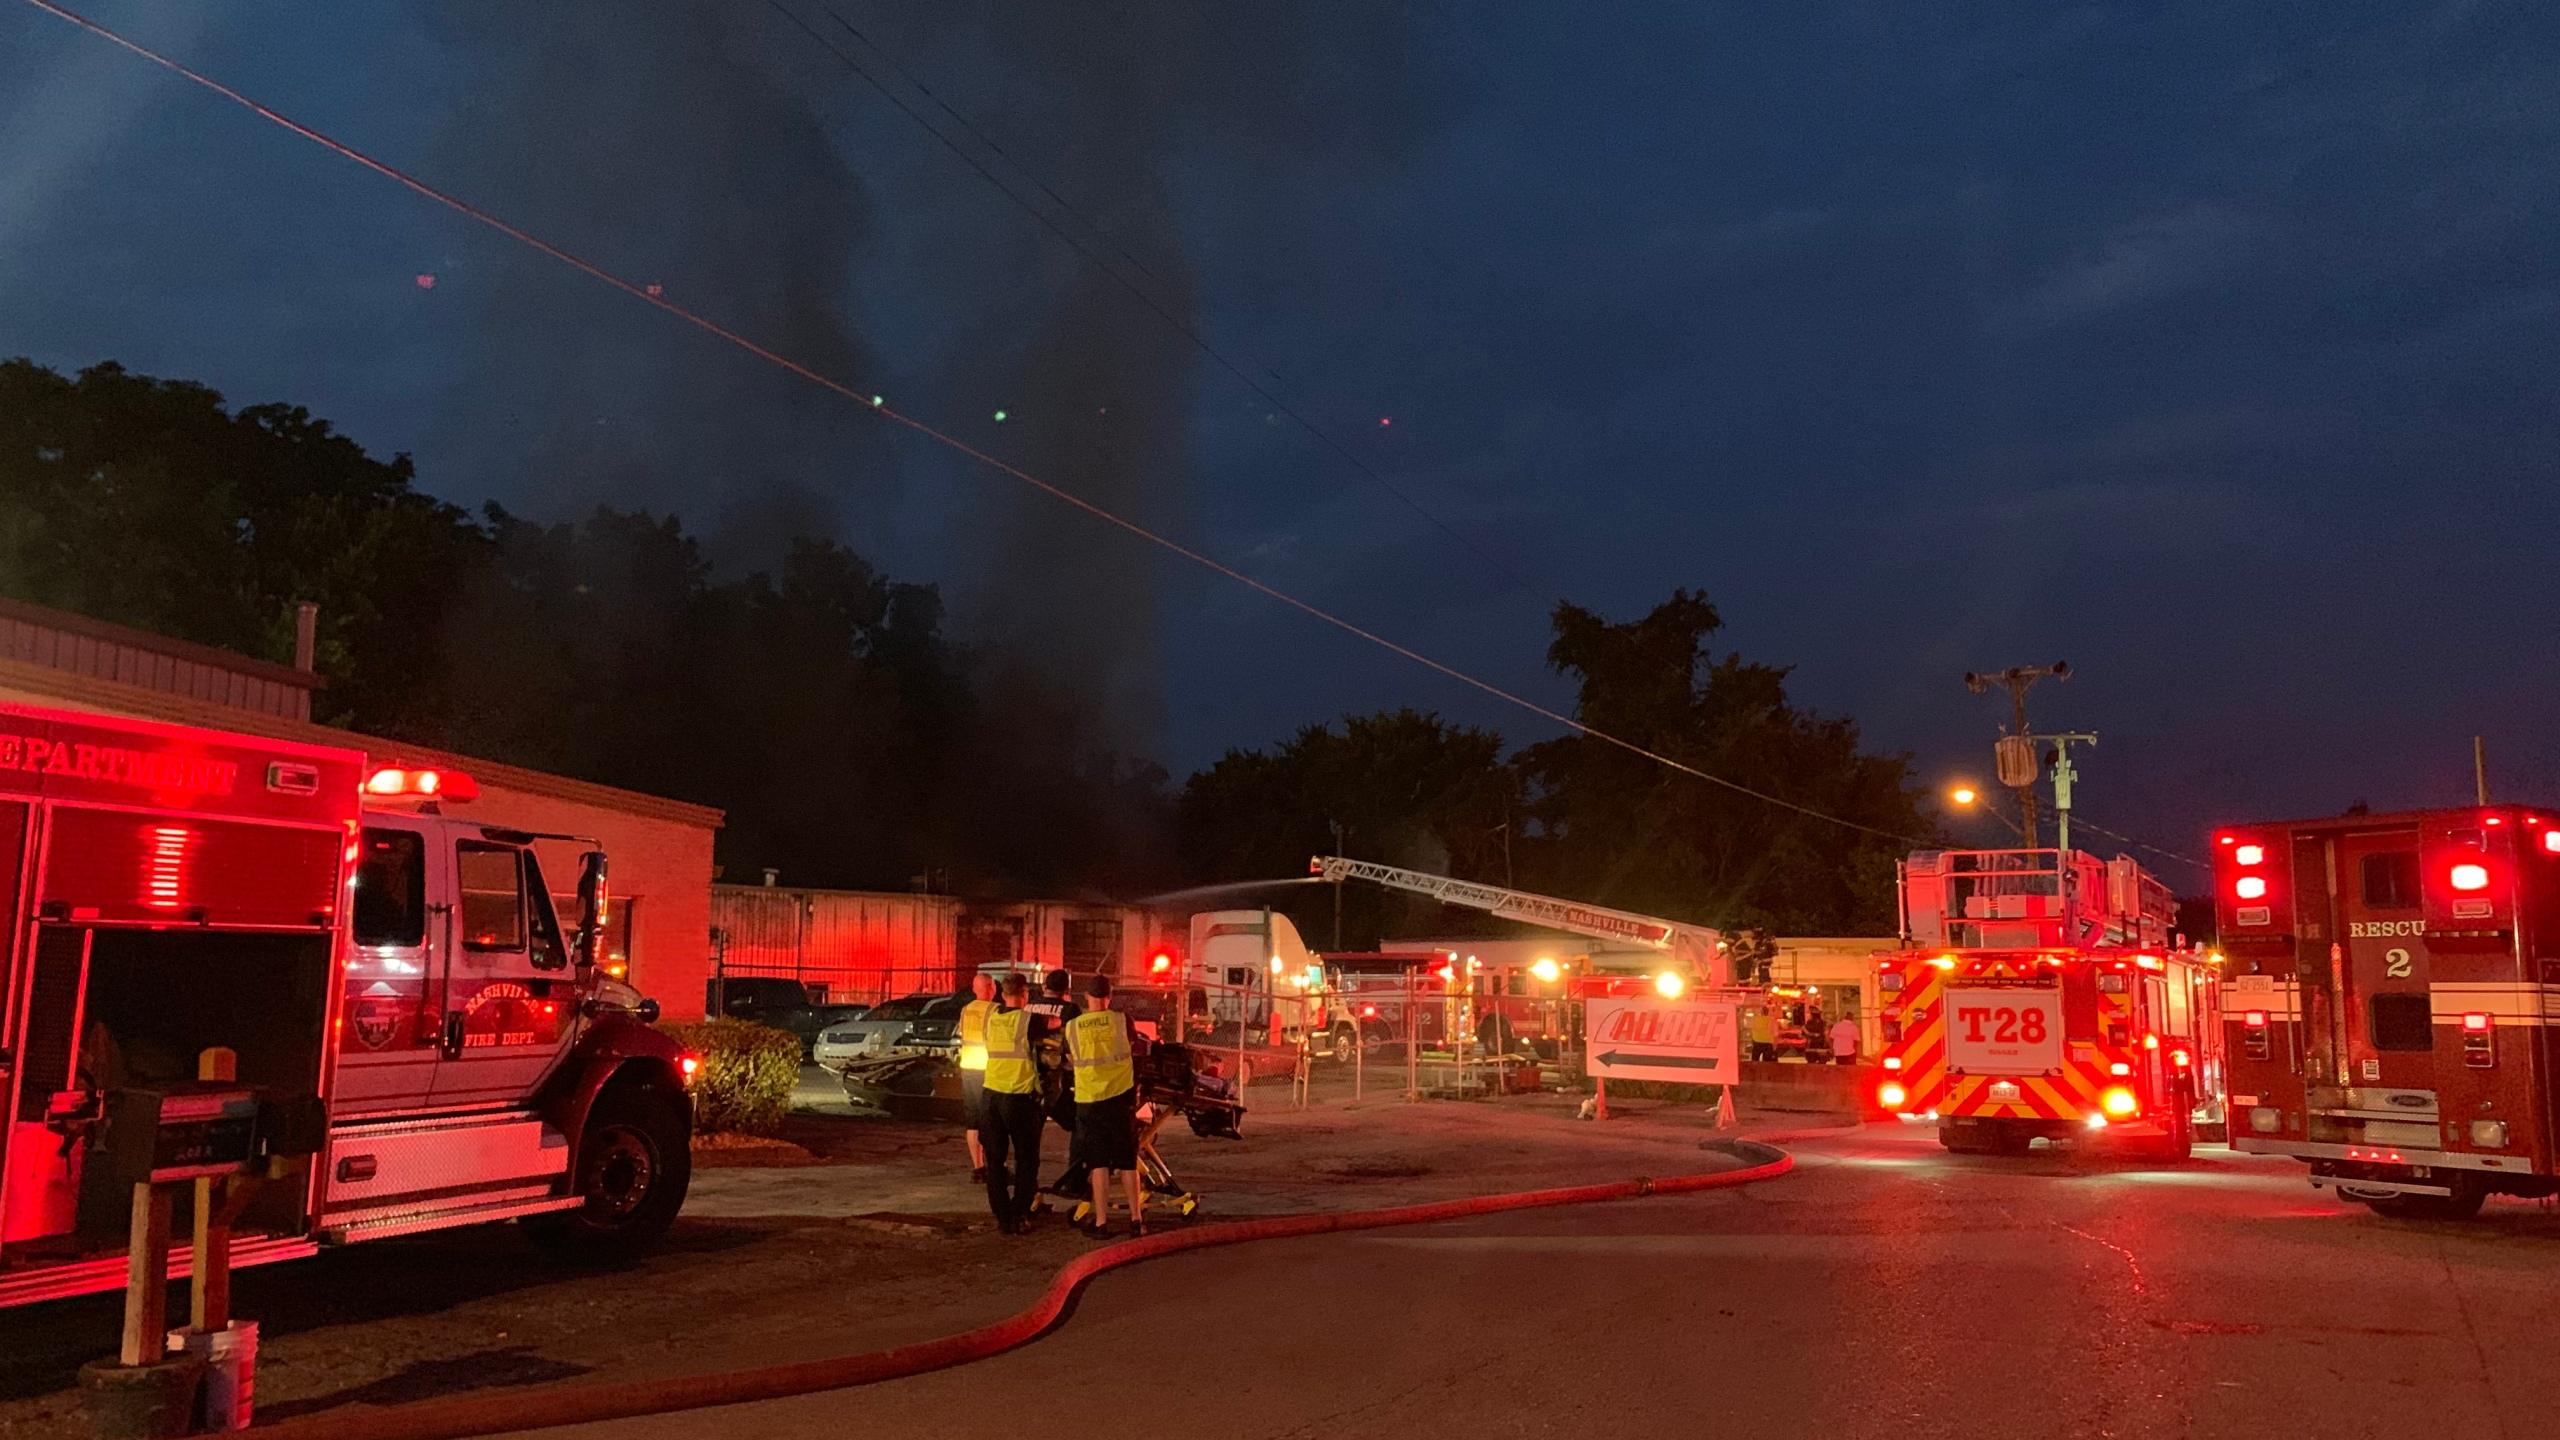 Crews fighting HAZMAT fire at South Nashville business